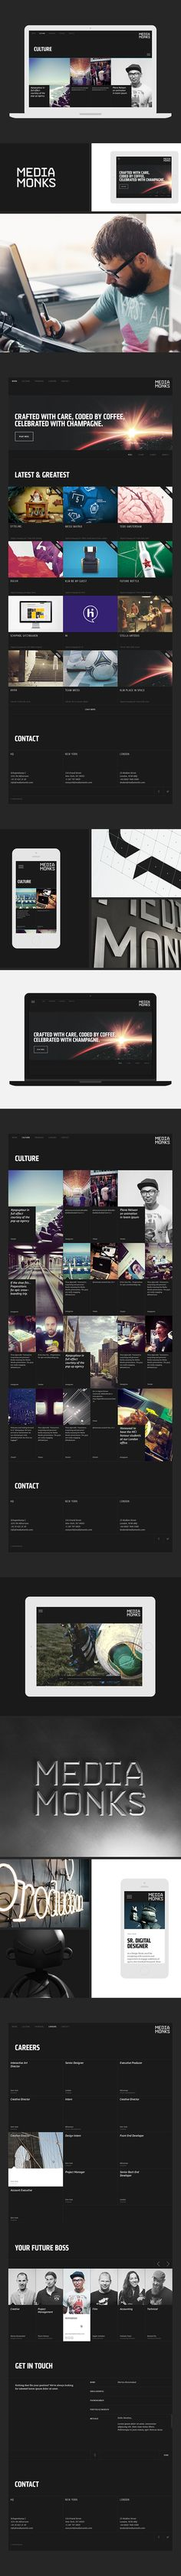 MediaMonks.com on Behance